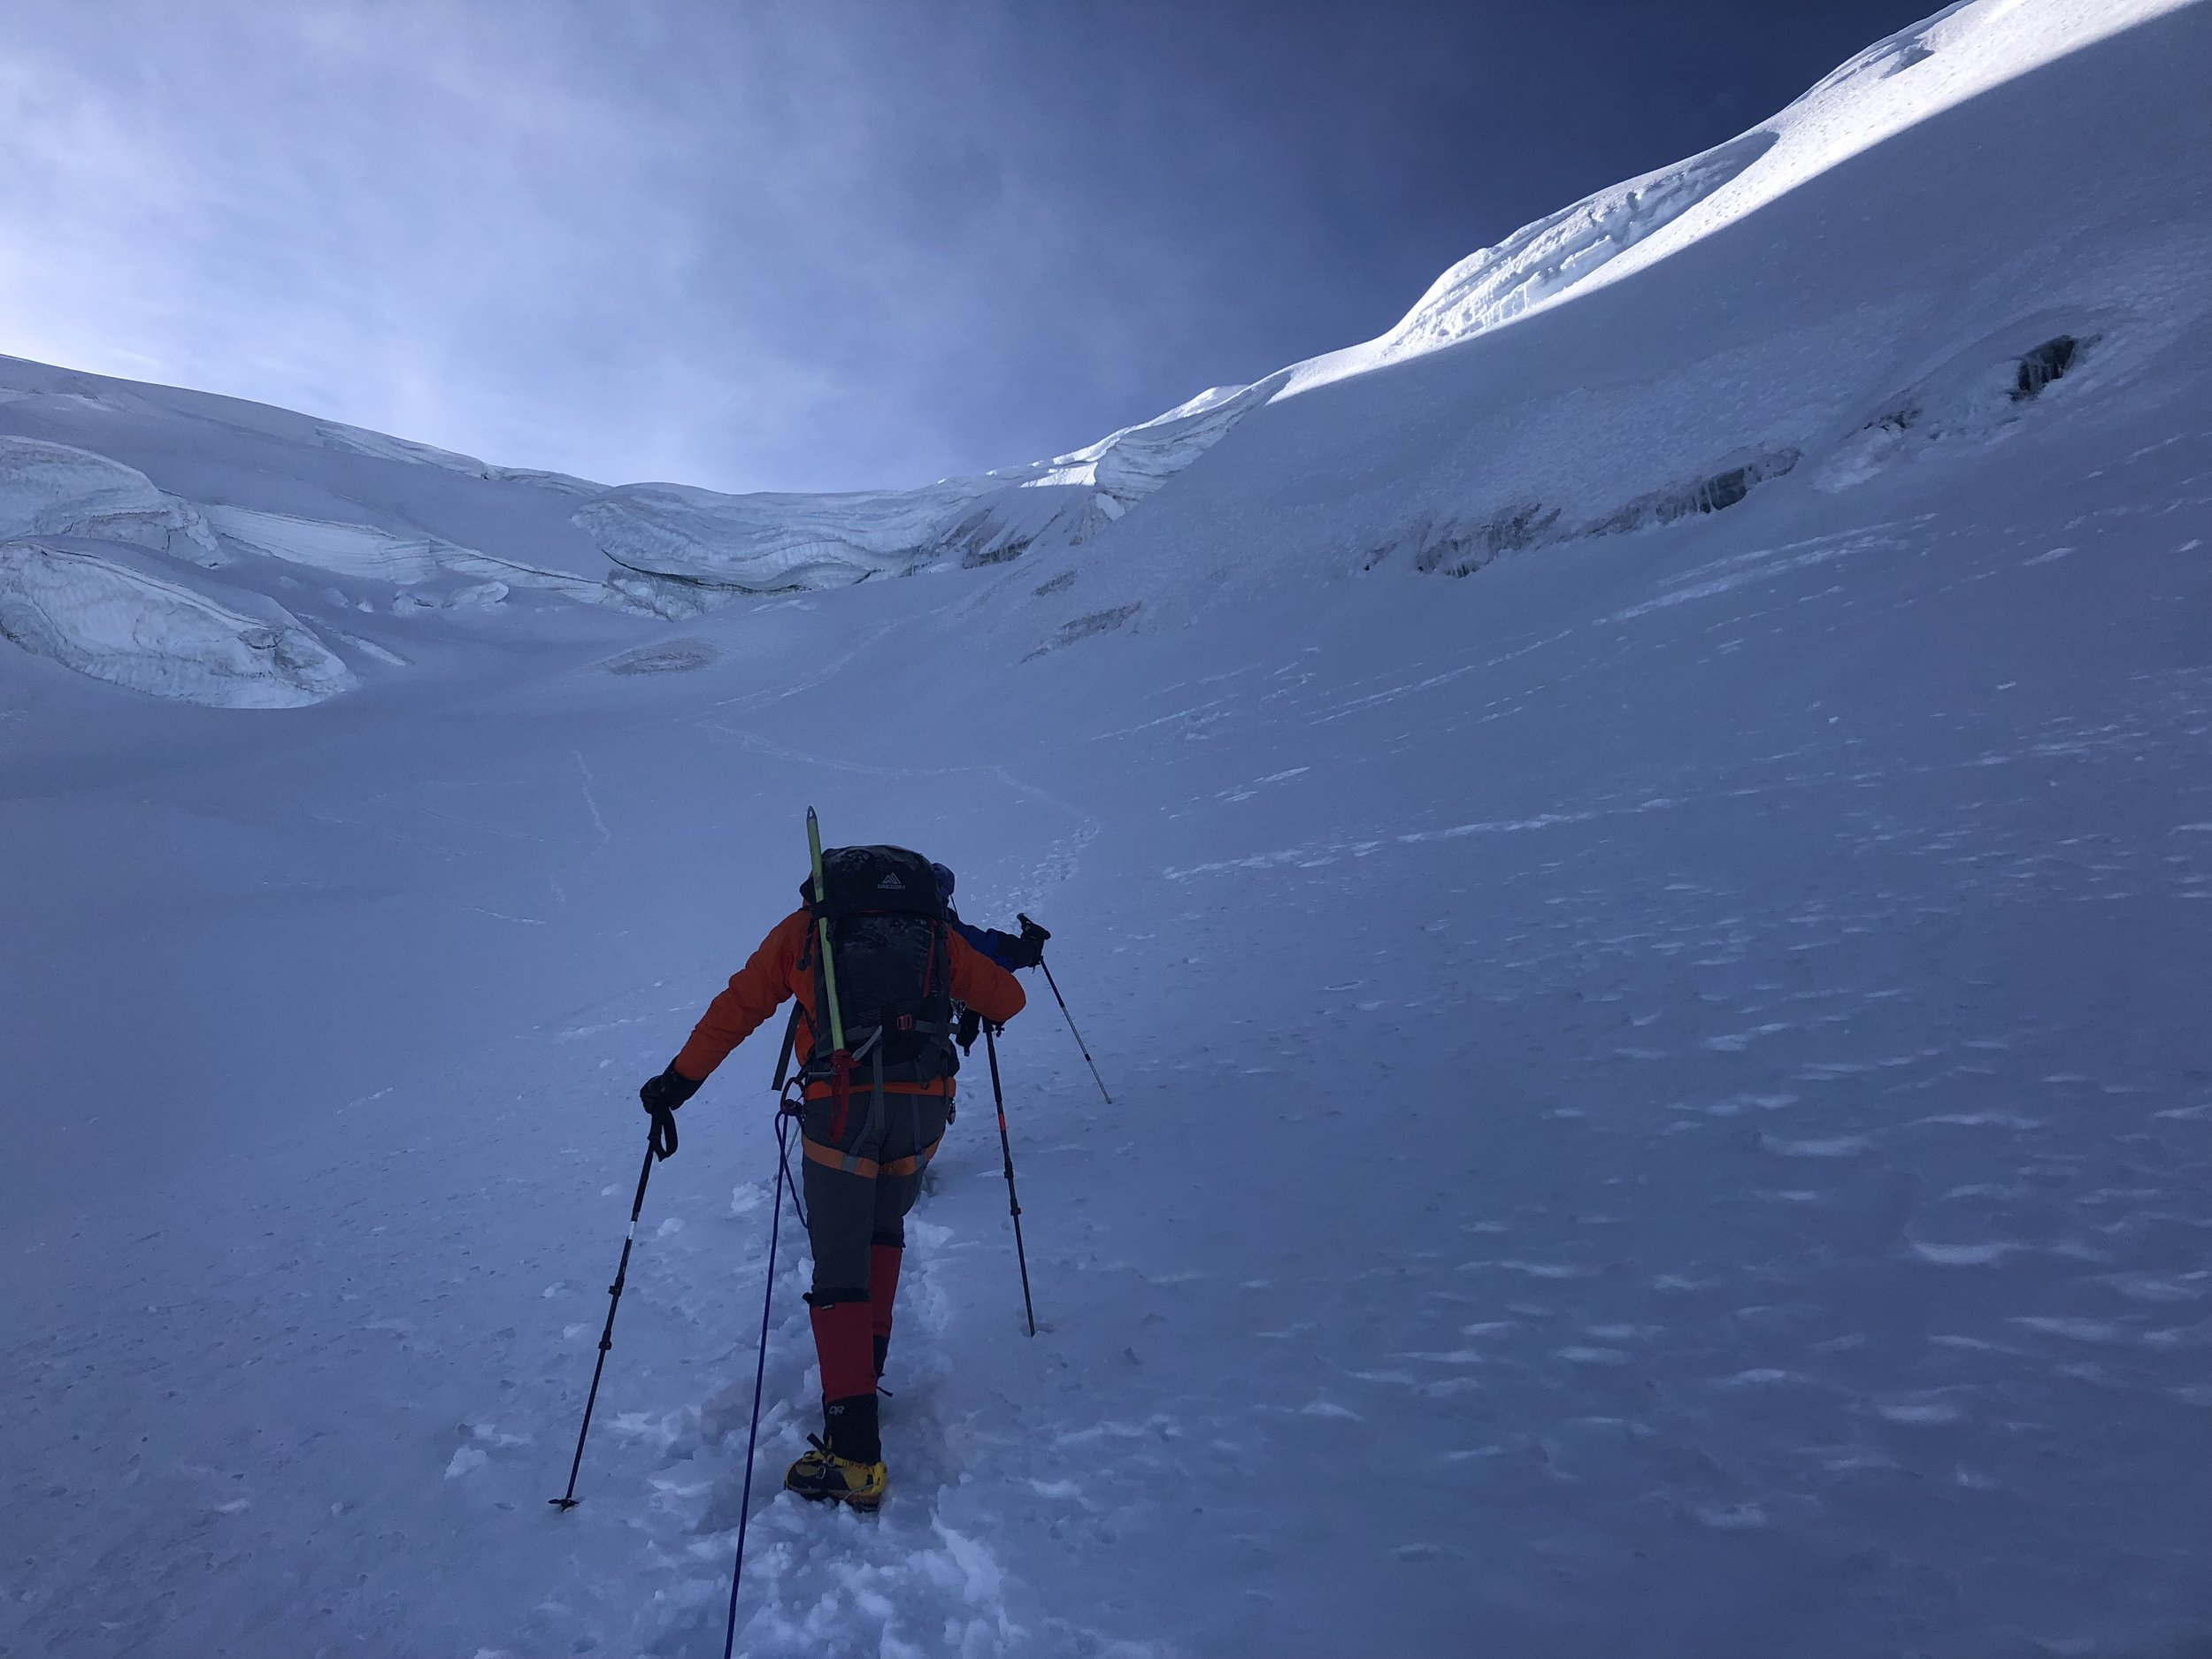 Well above 6,000m. Approaching the final section fo the climb. the summit is just above us.